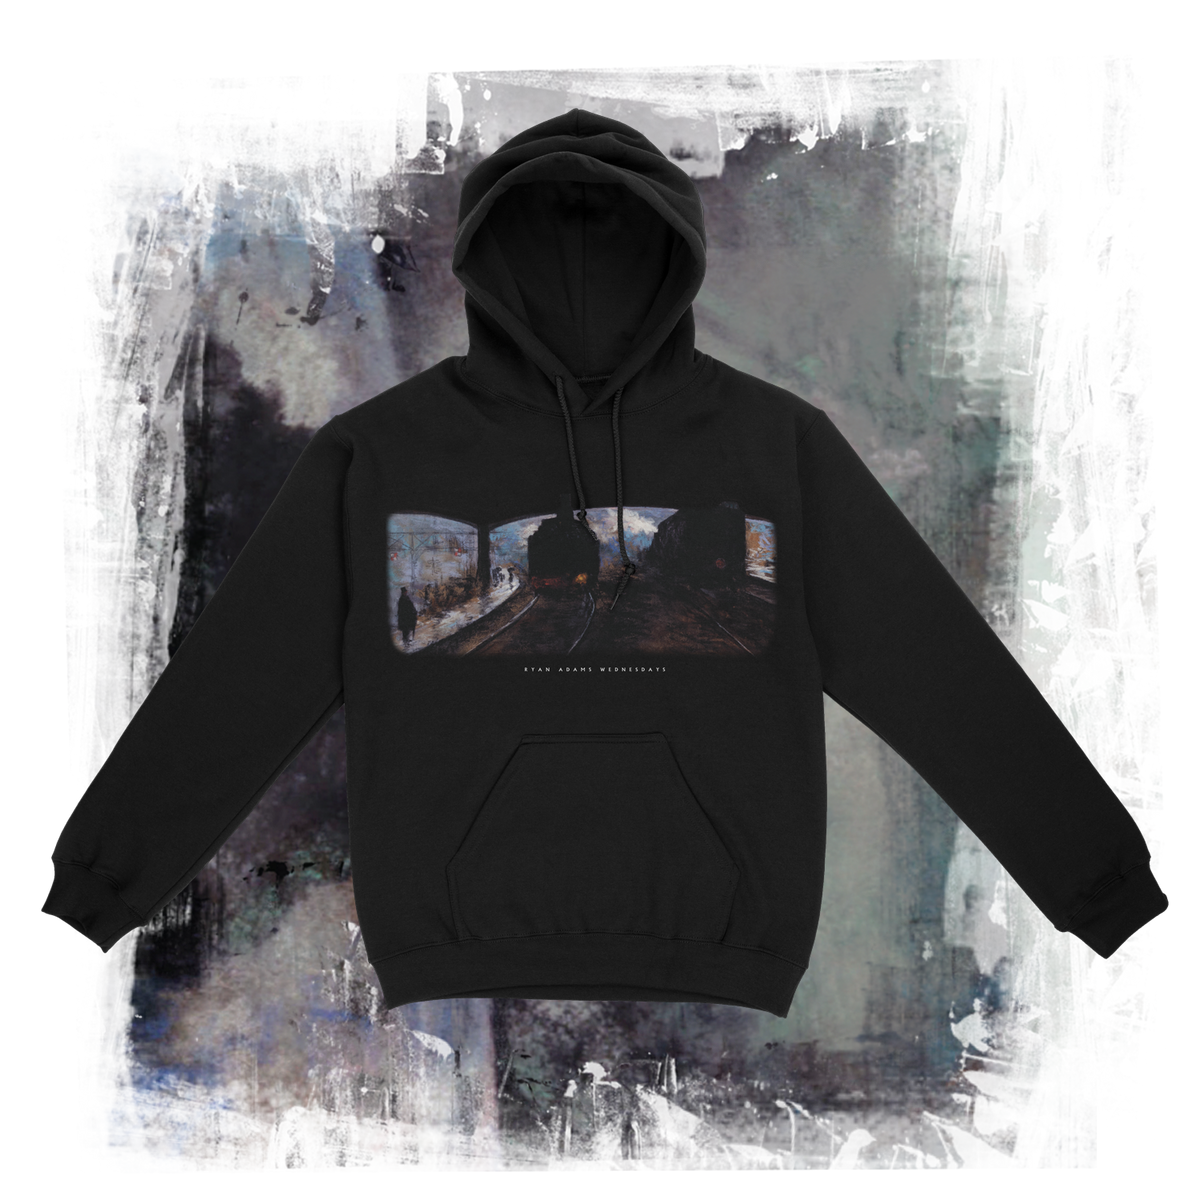 Ryan Adams Wednesdays Black Hoodie